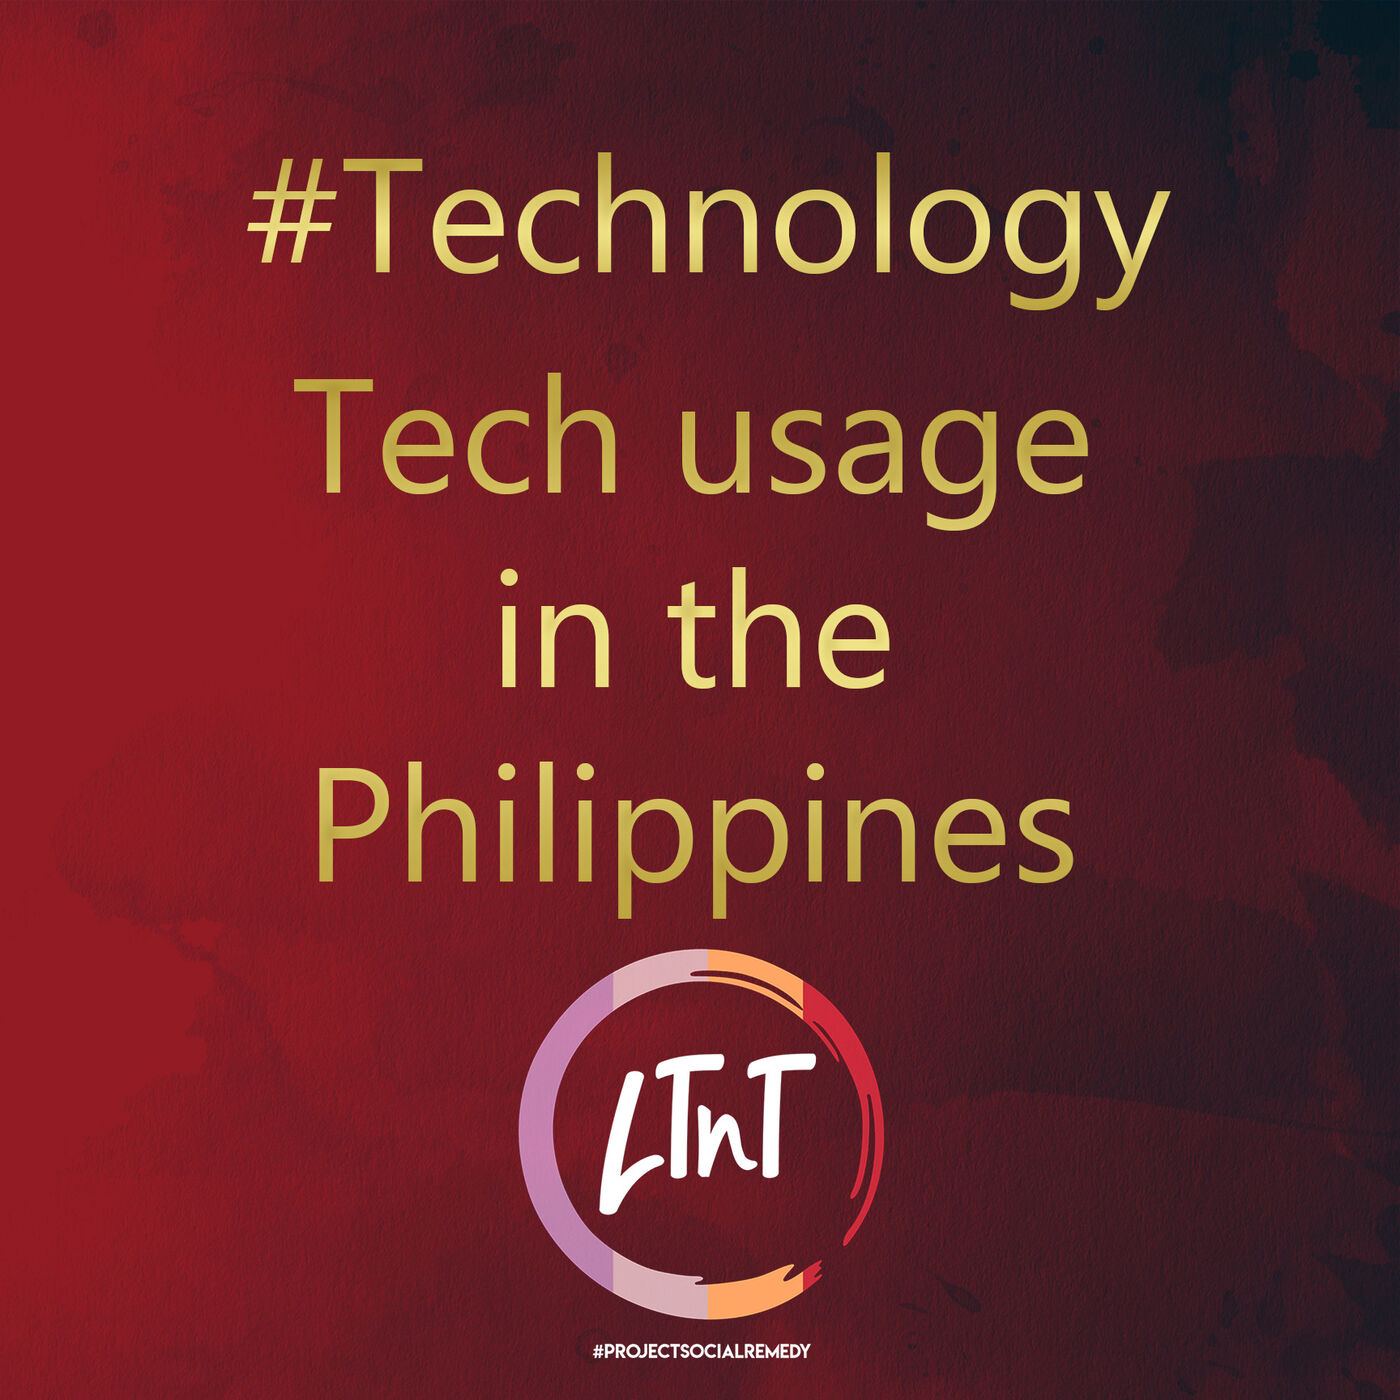 Tech usage in the Philippines